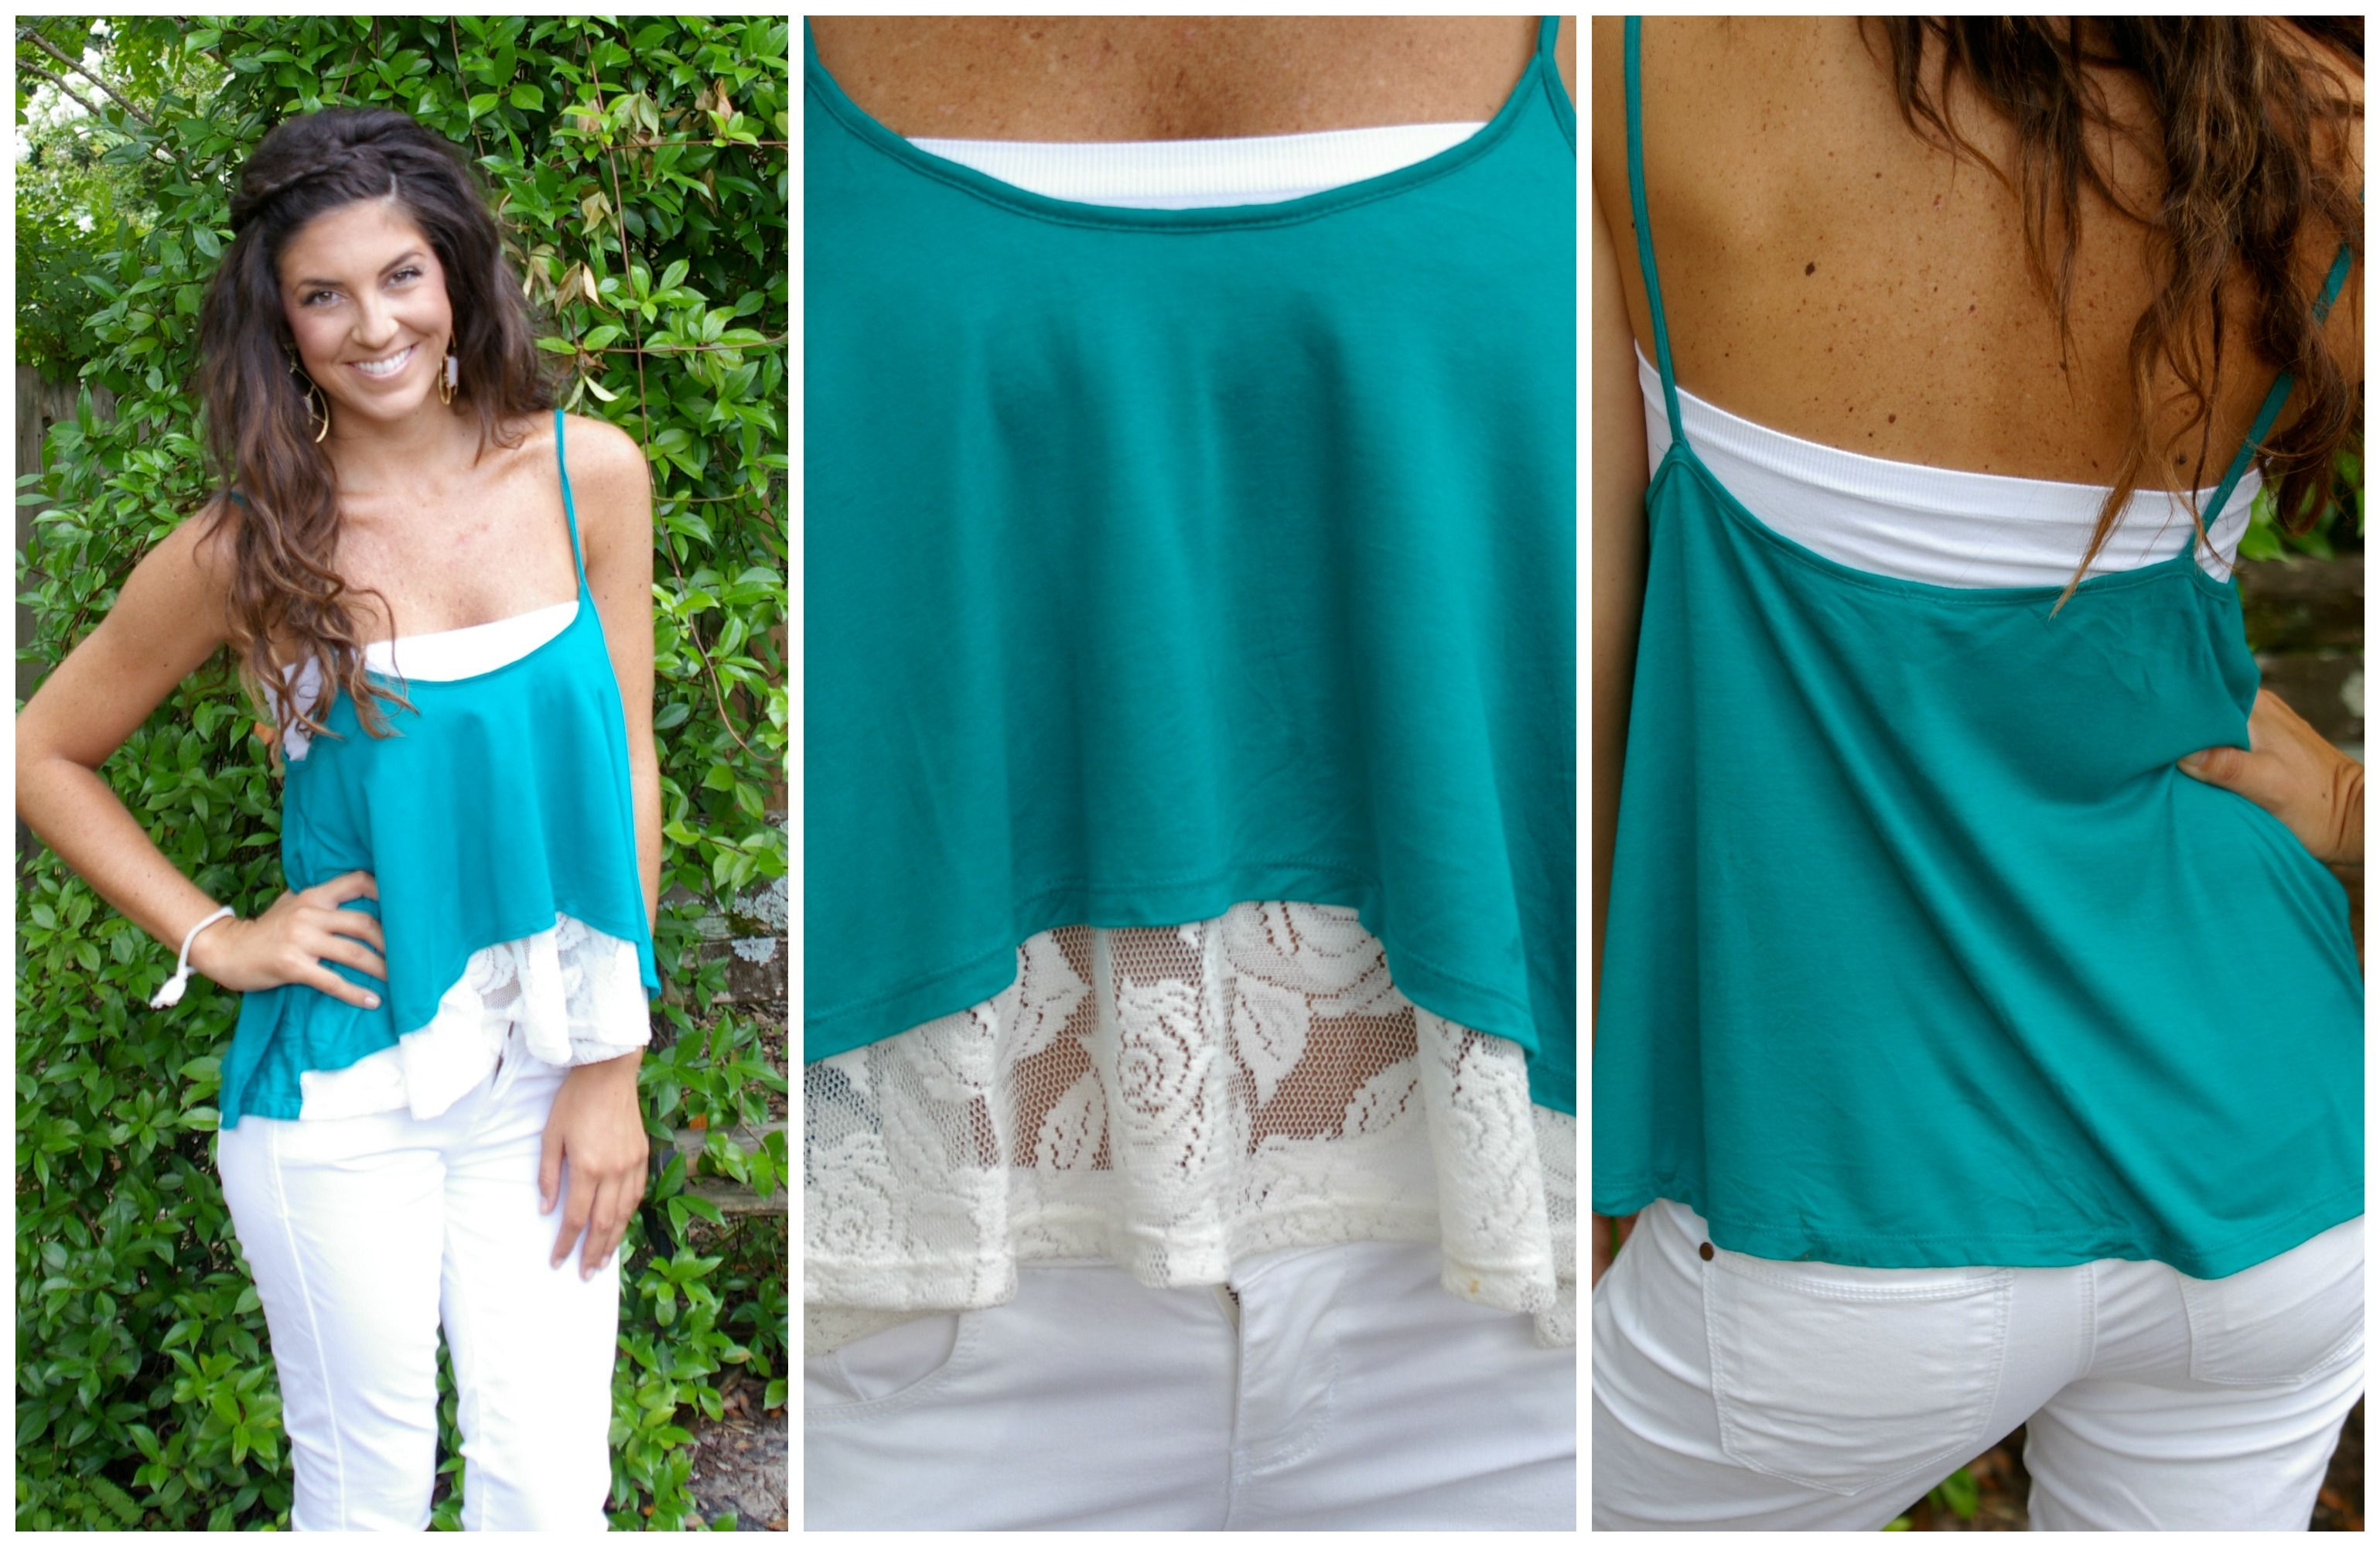 Shop hot new arrivals directly from facebook now everthine boutique